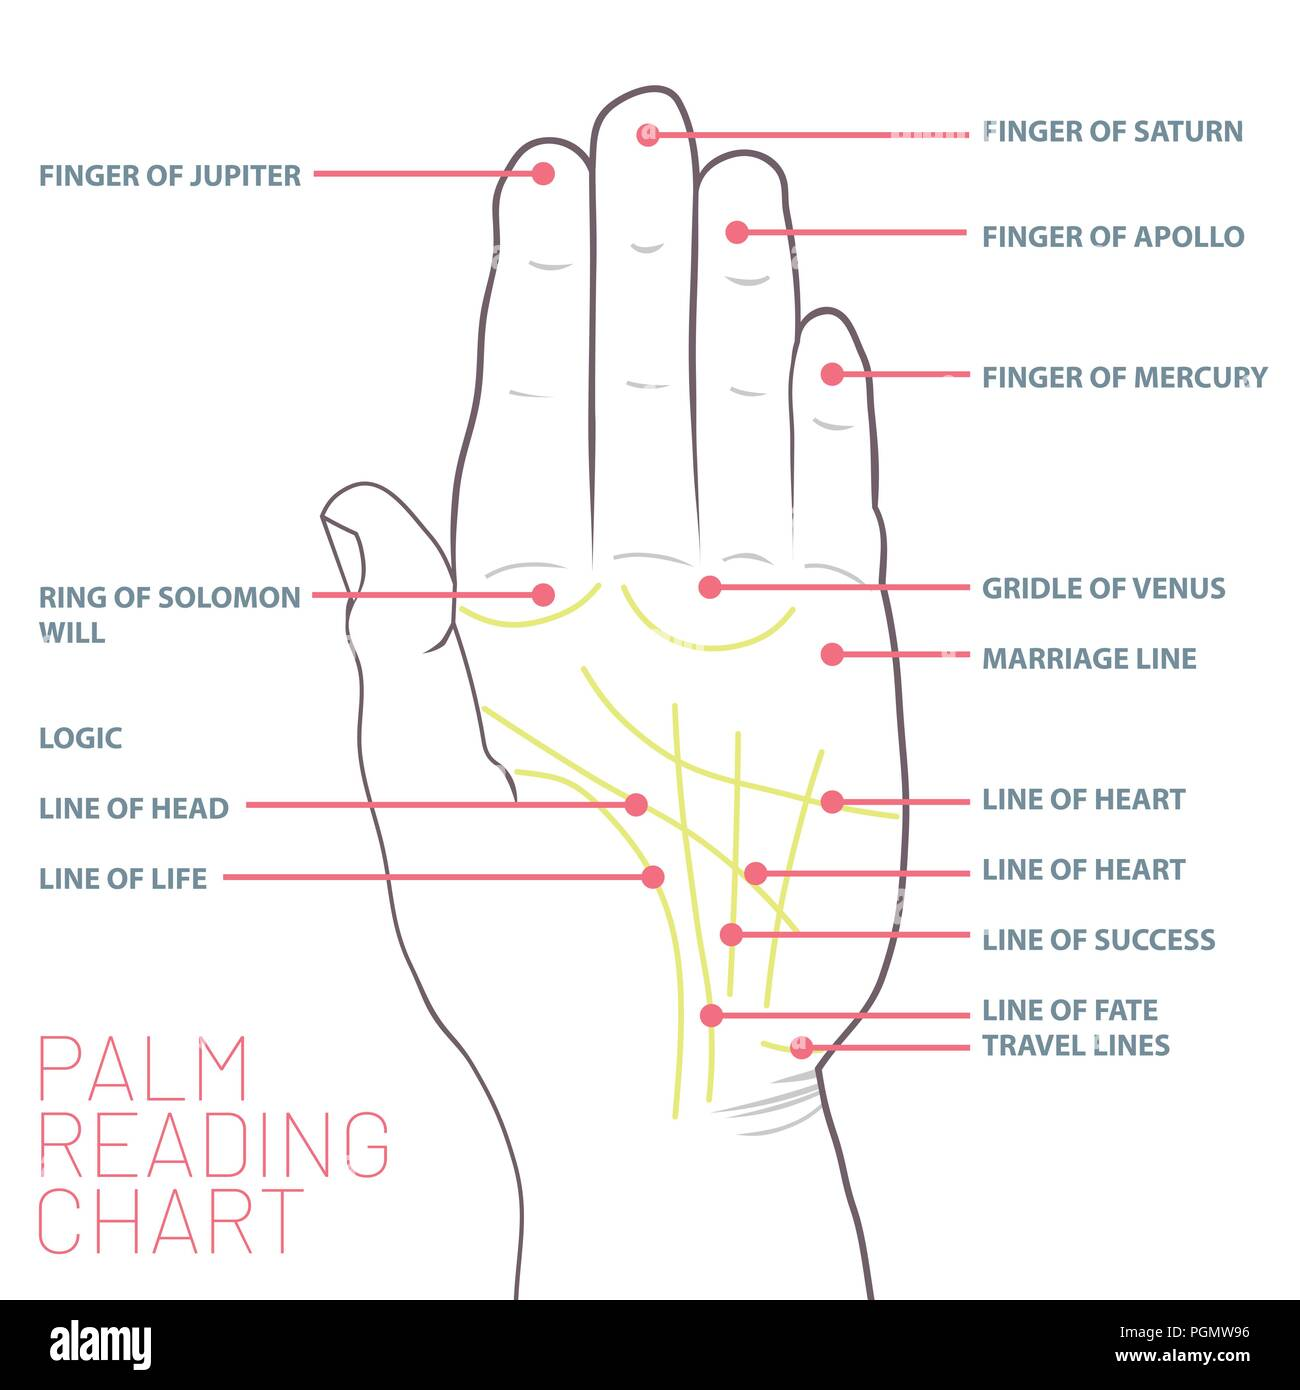 hight resolution of palm reading chart palmistry map of the palm s main lines